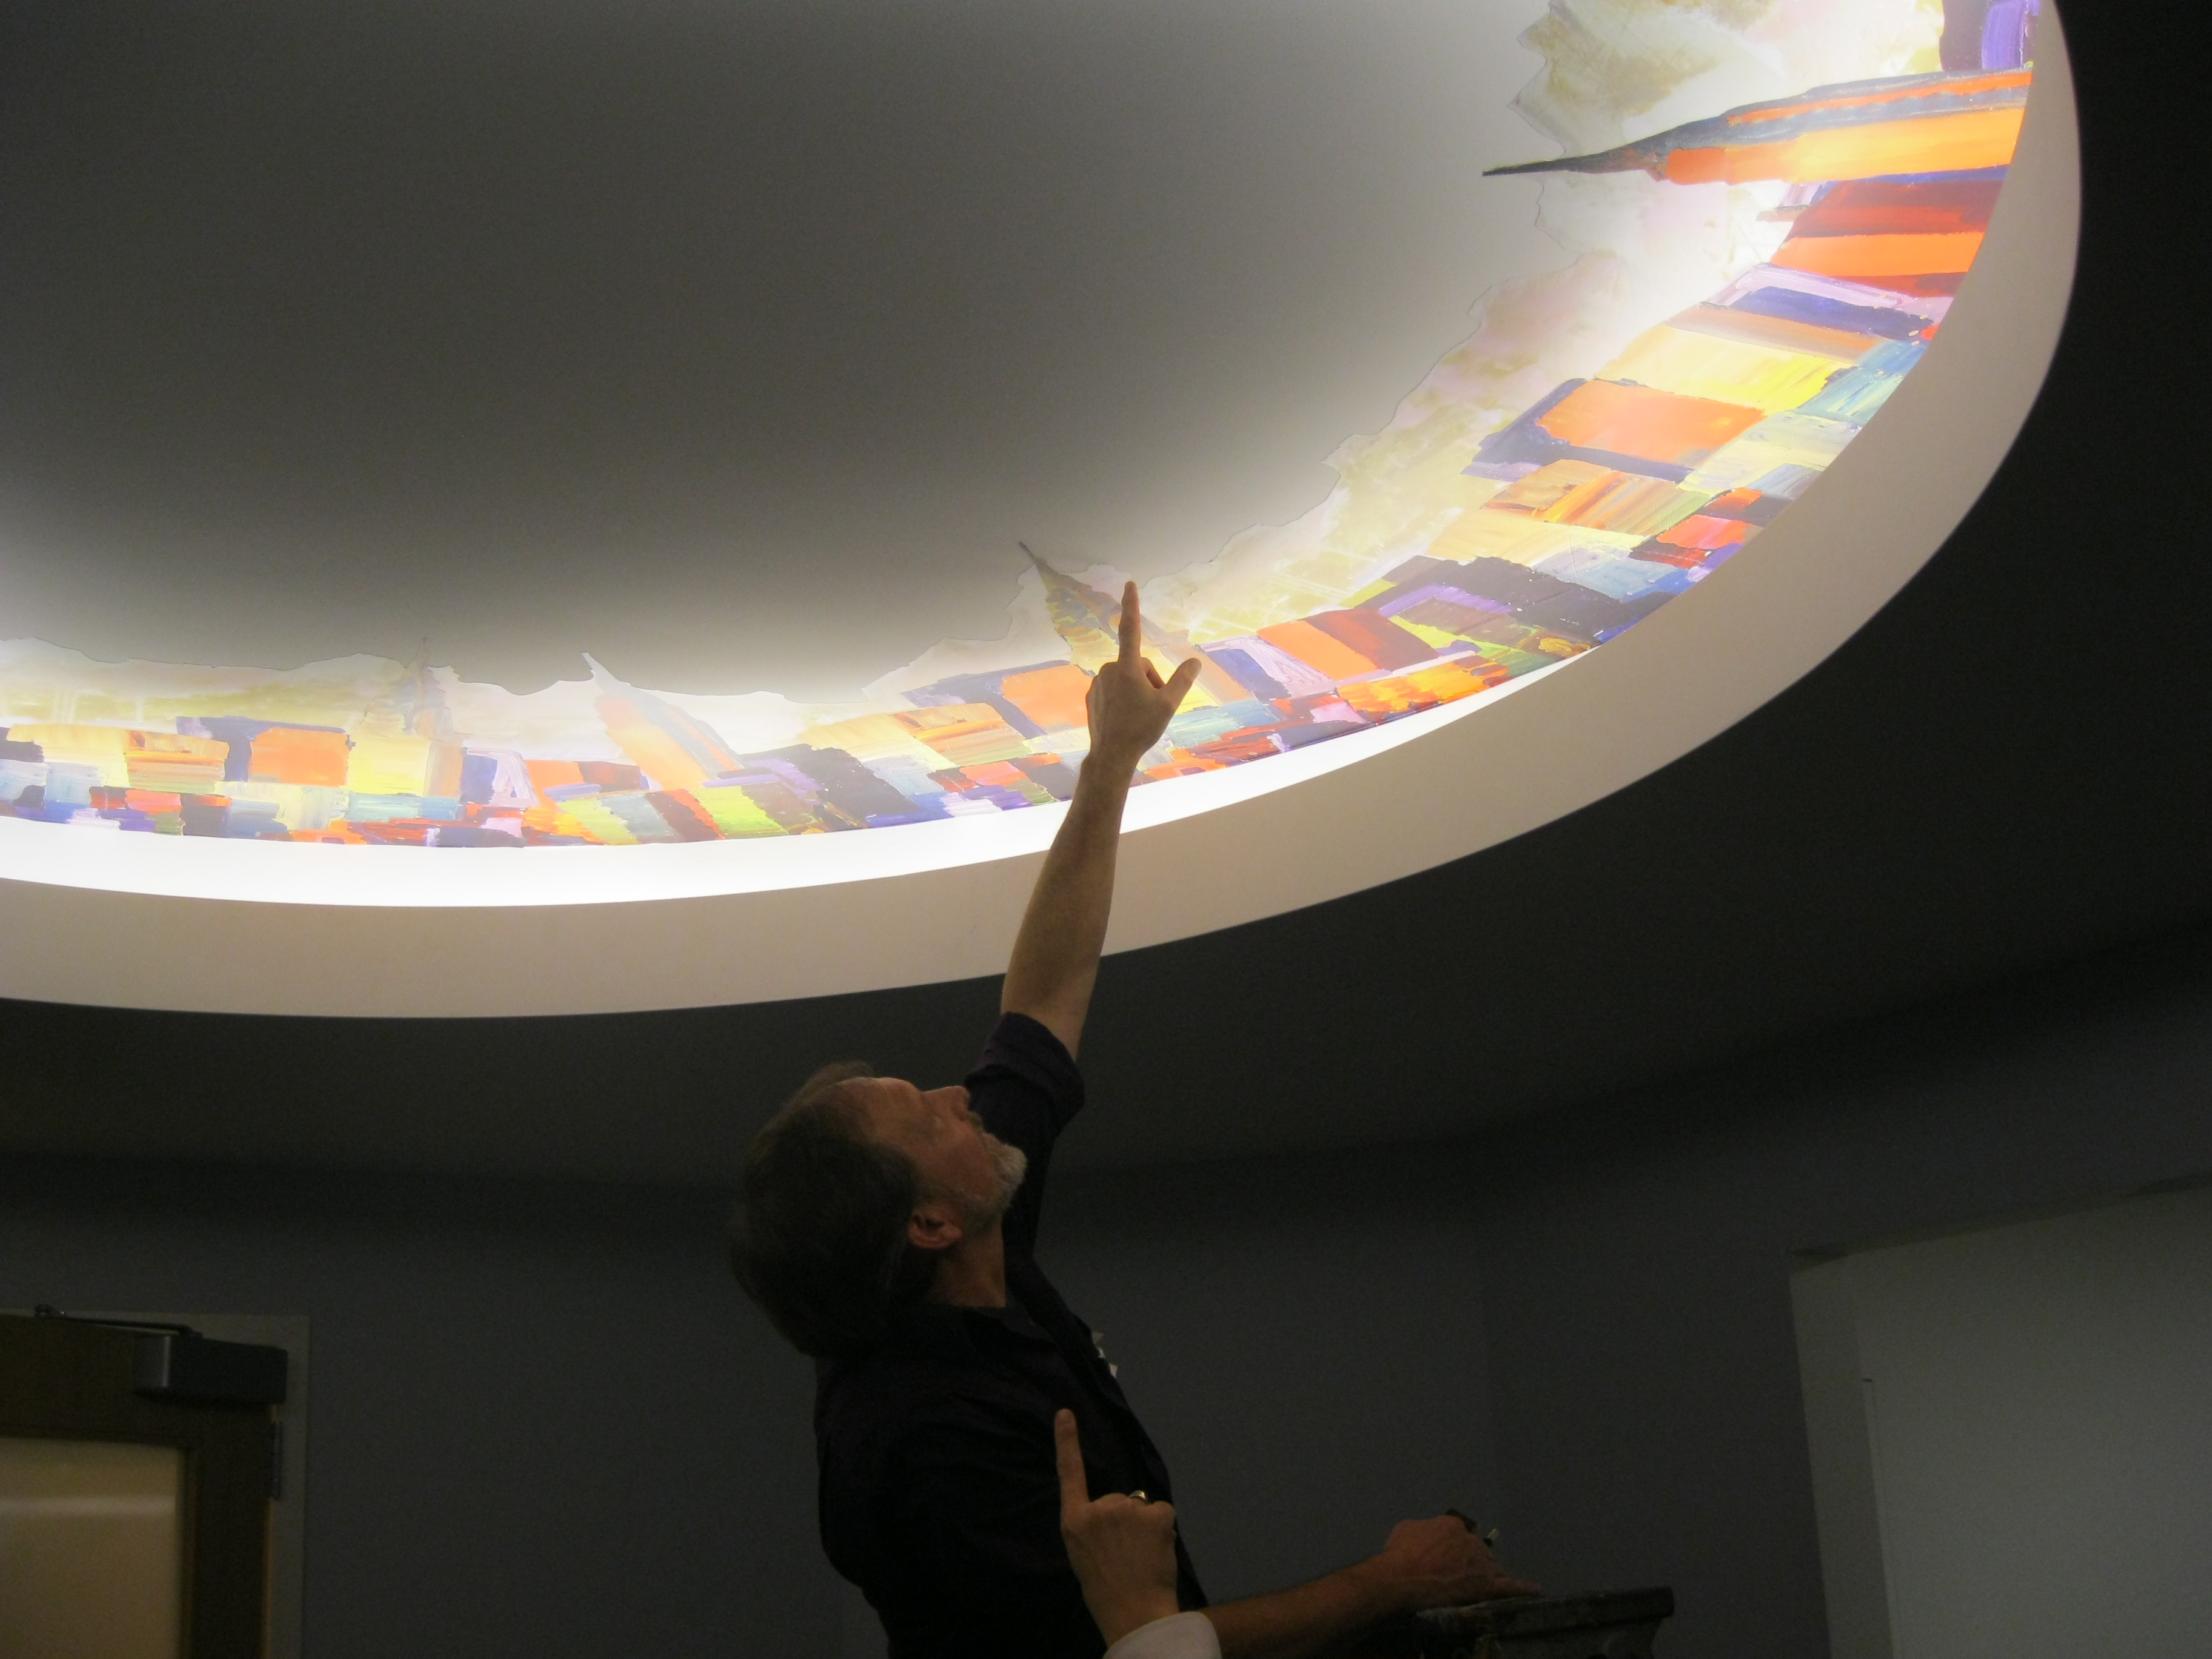 applying adhesive vynil for cove ceiling artwork